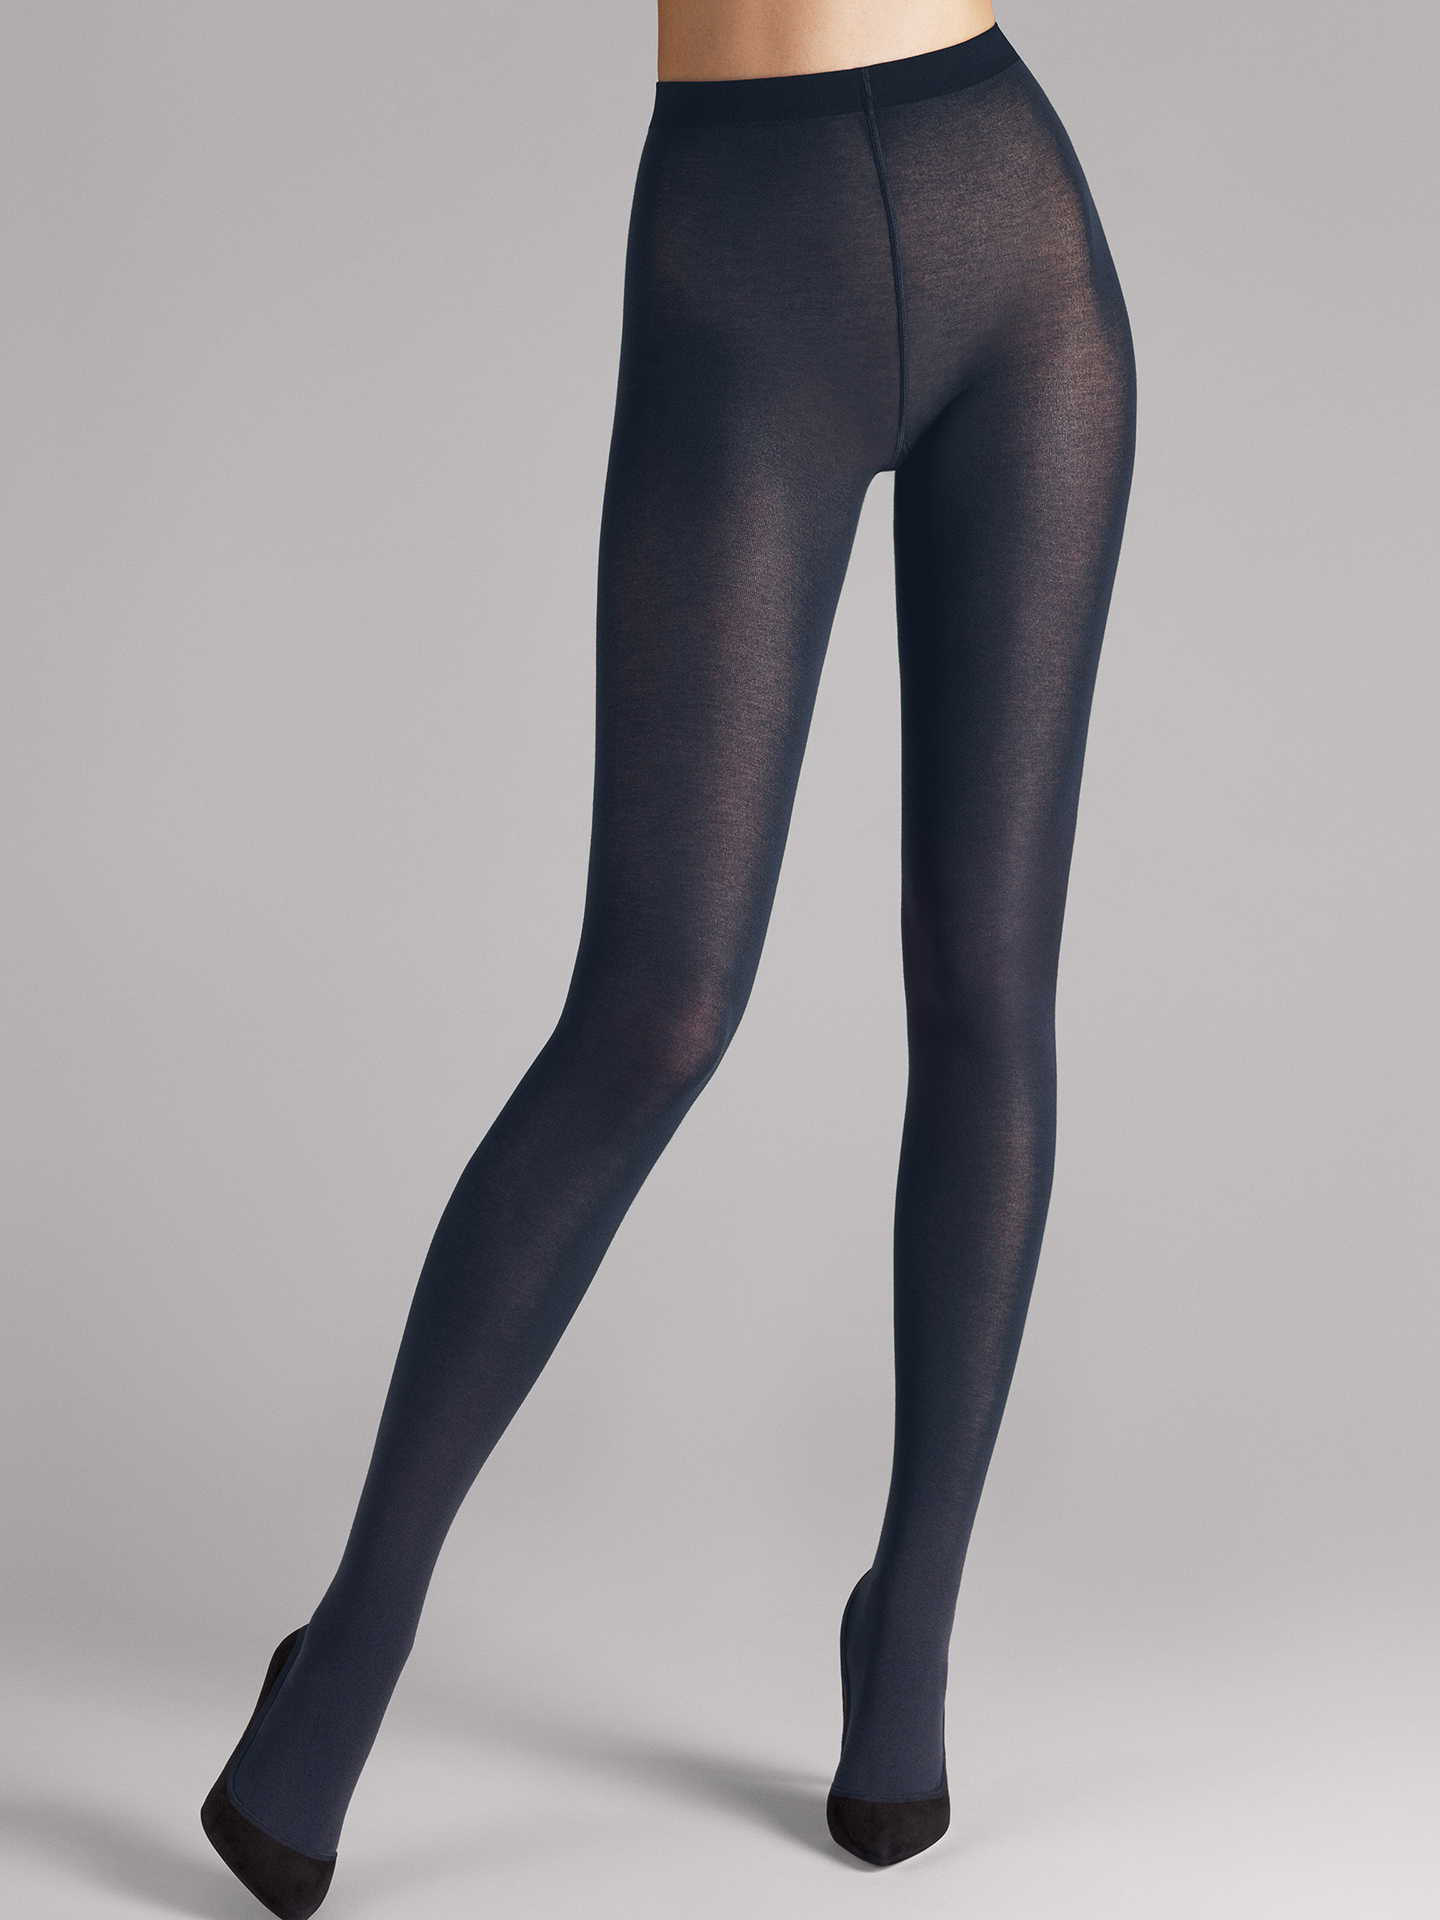 Wolford Apparel & Accessories > Clothing > Collant Cotton Velvet - 5280 - XS